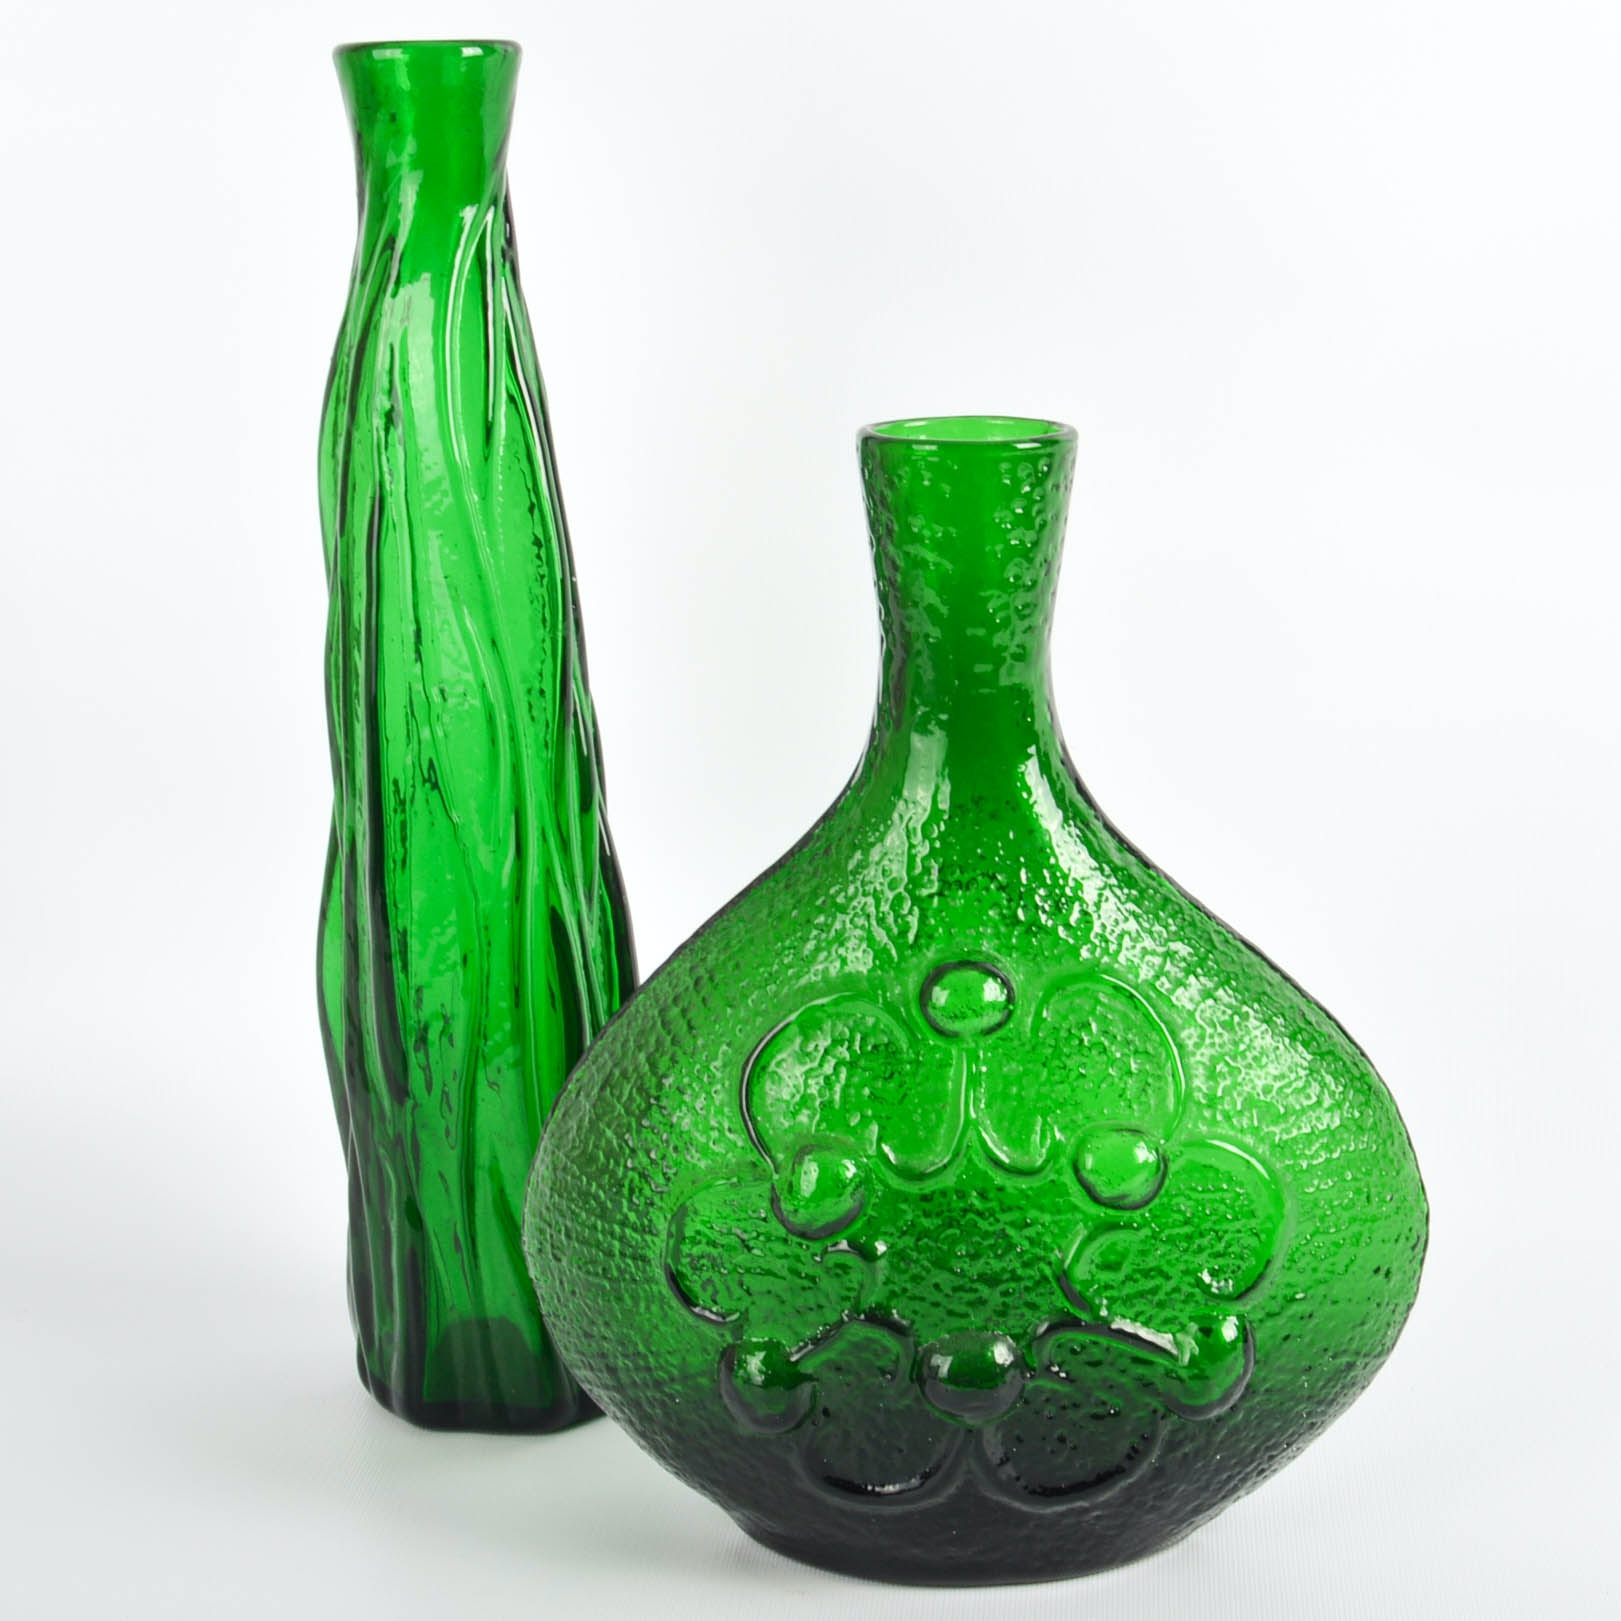 Two 1960s Empoli Verde Emerald Green Glass Vases